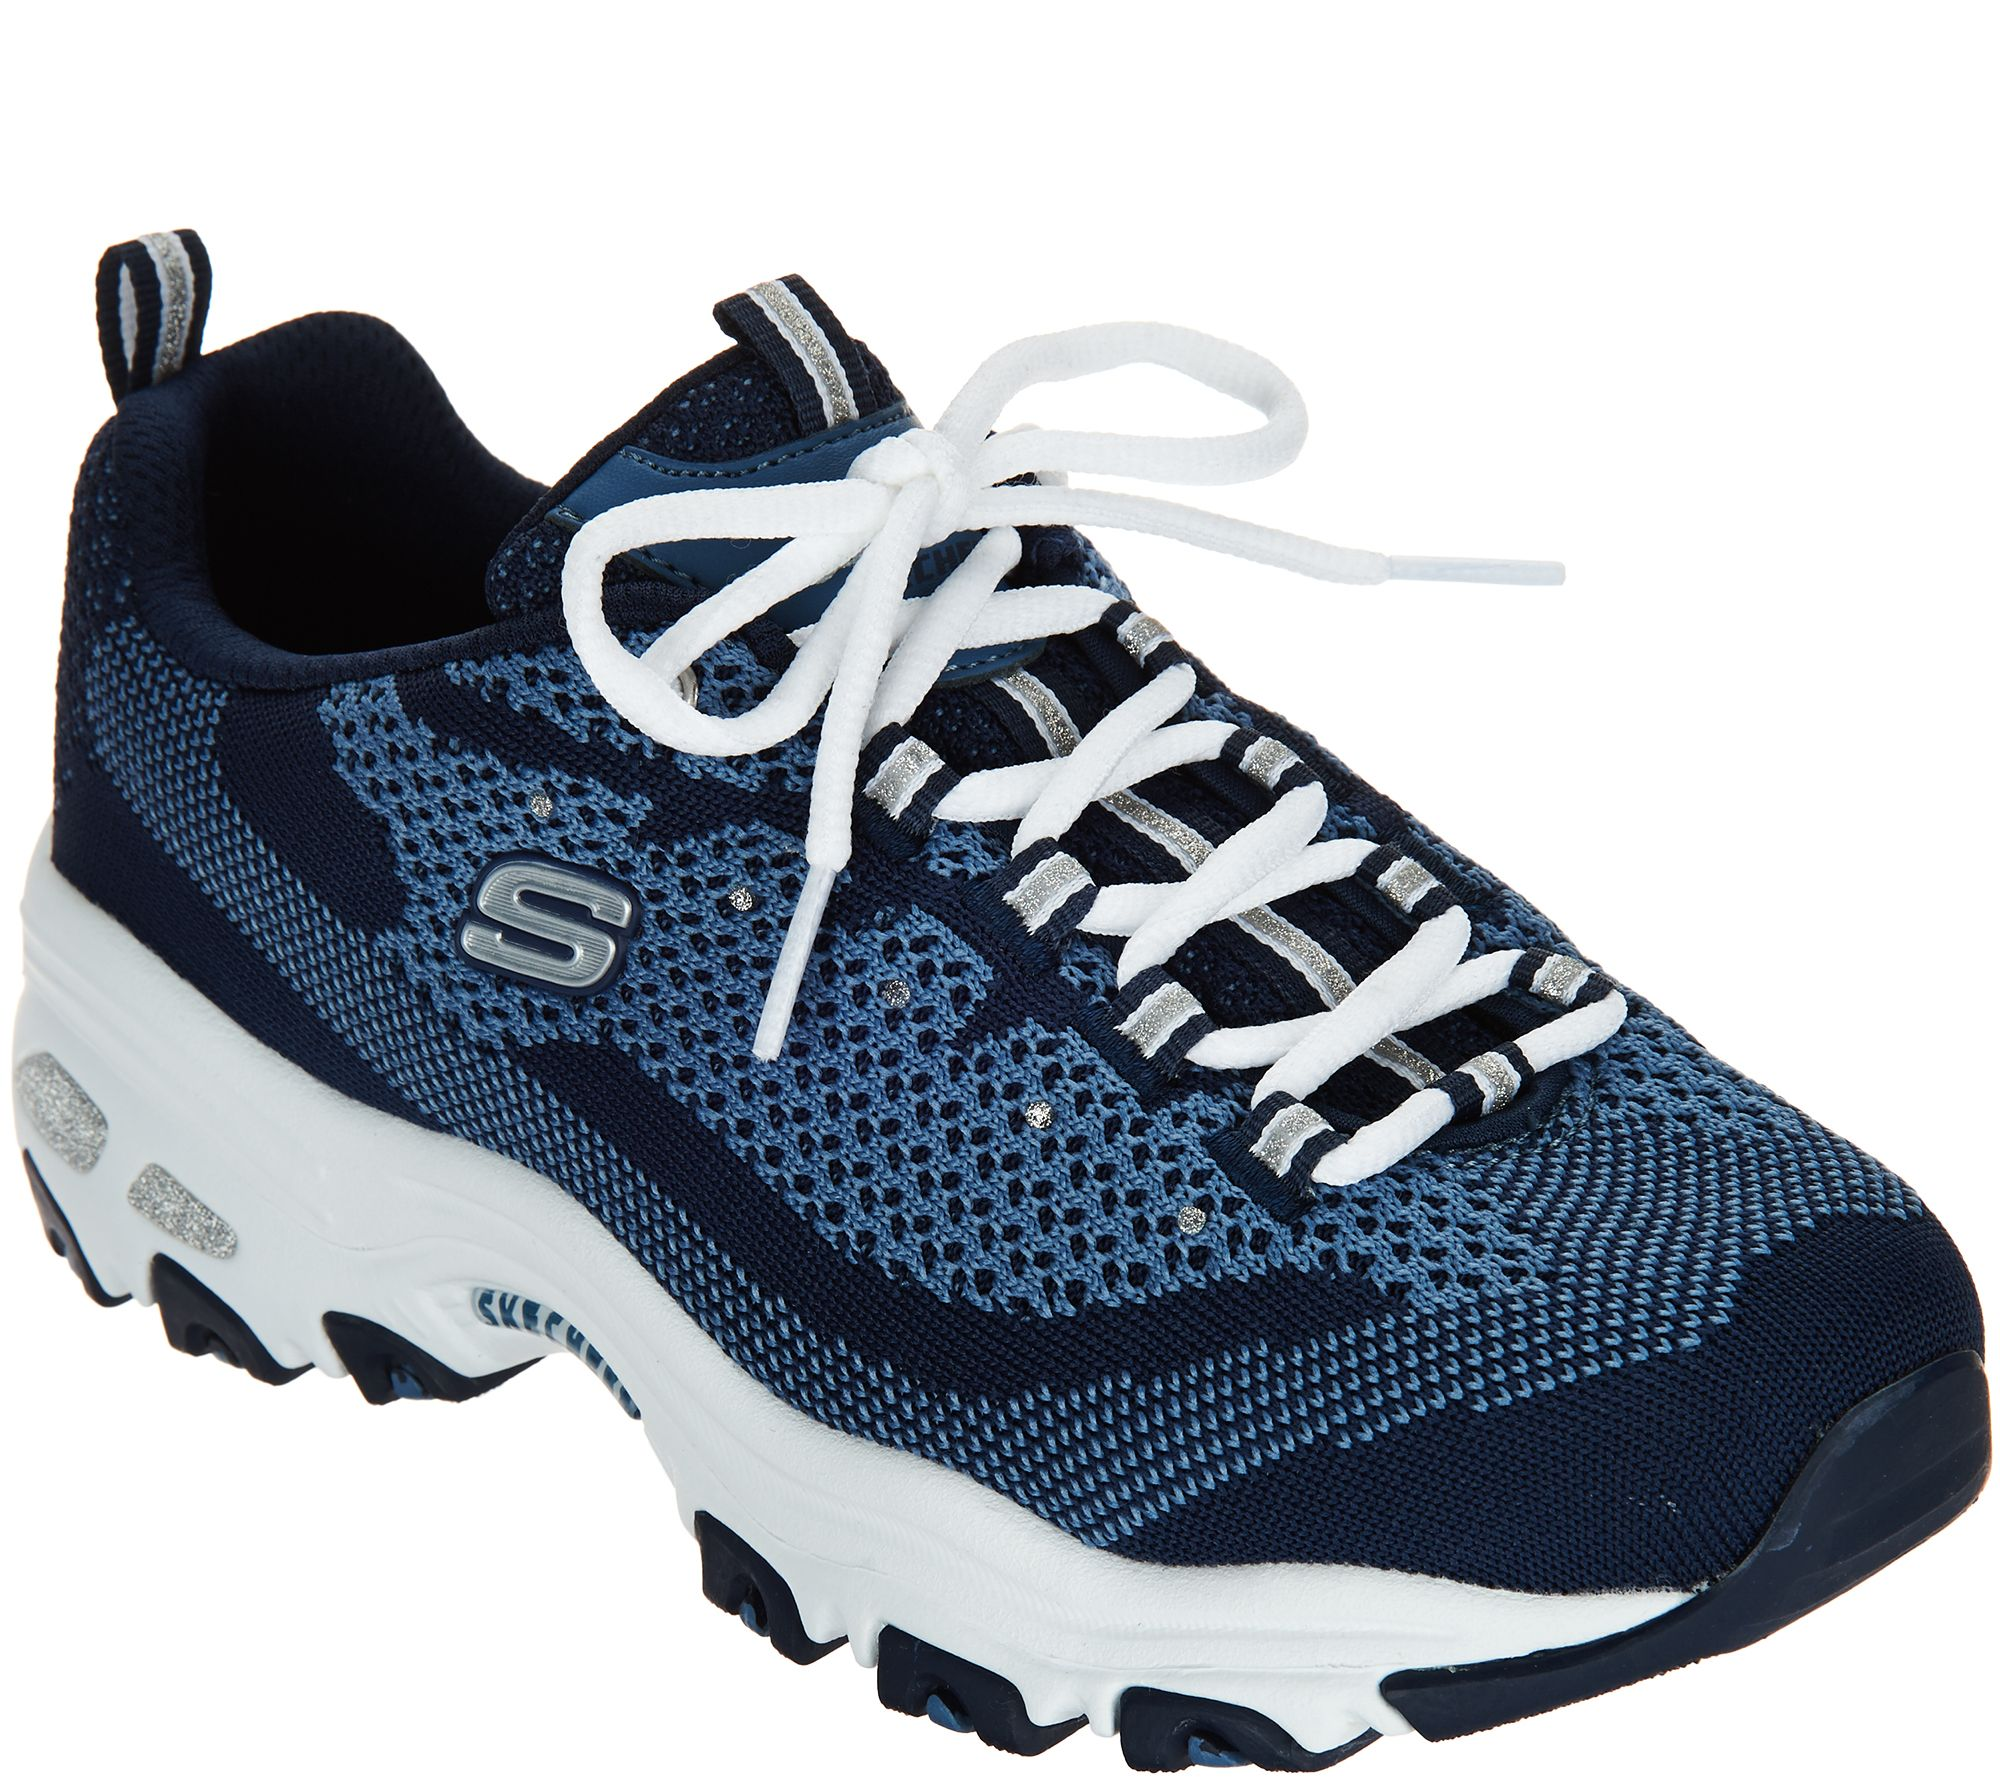 516e4c6de07 Skechers D Lites Flat Knit Lace-up Sneaker - Reinvention - Page 1 — QVC.com